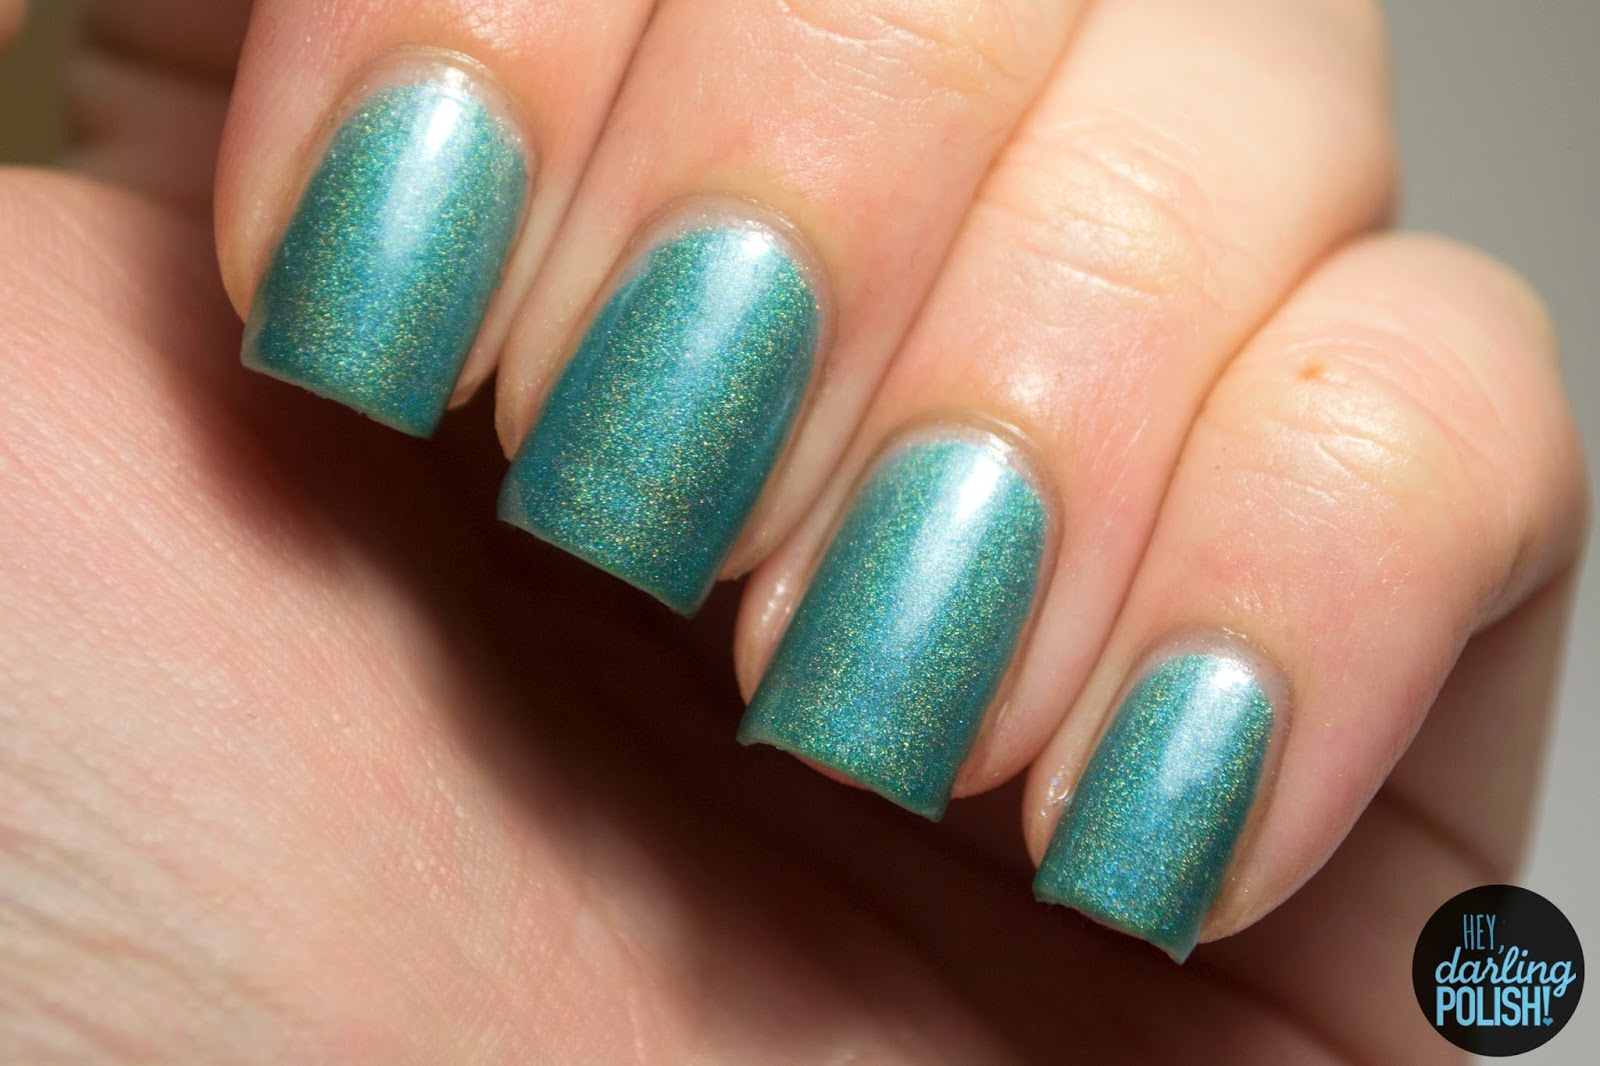 teal, unreal the end of time, holo, nails, nail polish, polish, indie, indie polish, indie nail polish, review, swatches, squishy face polish, spring collection